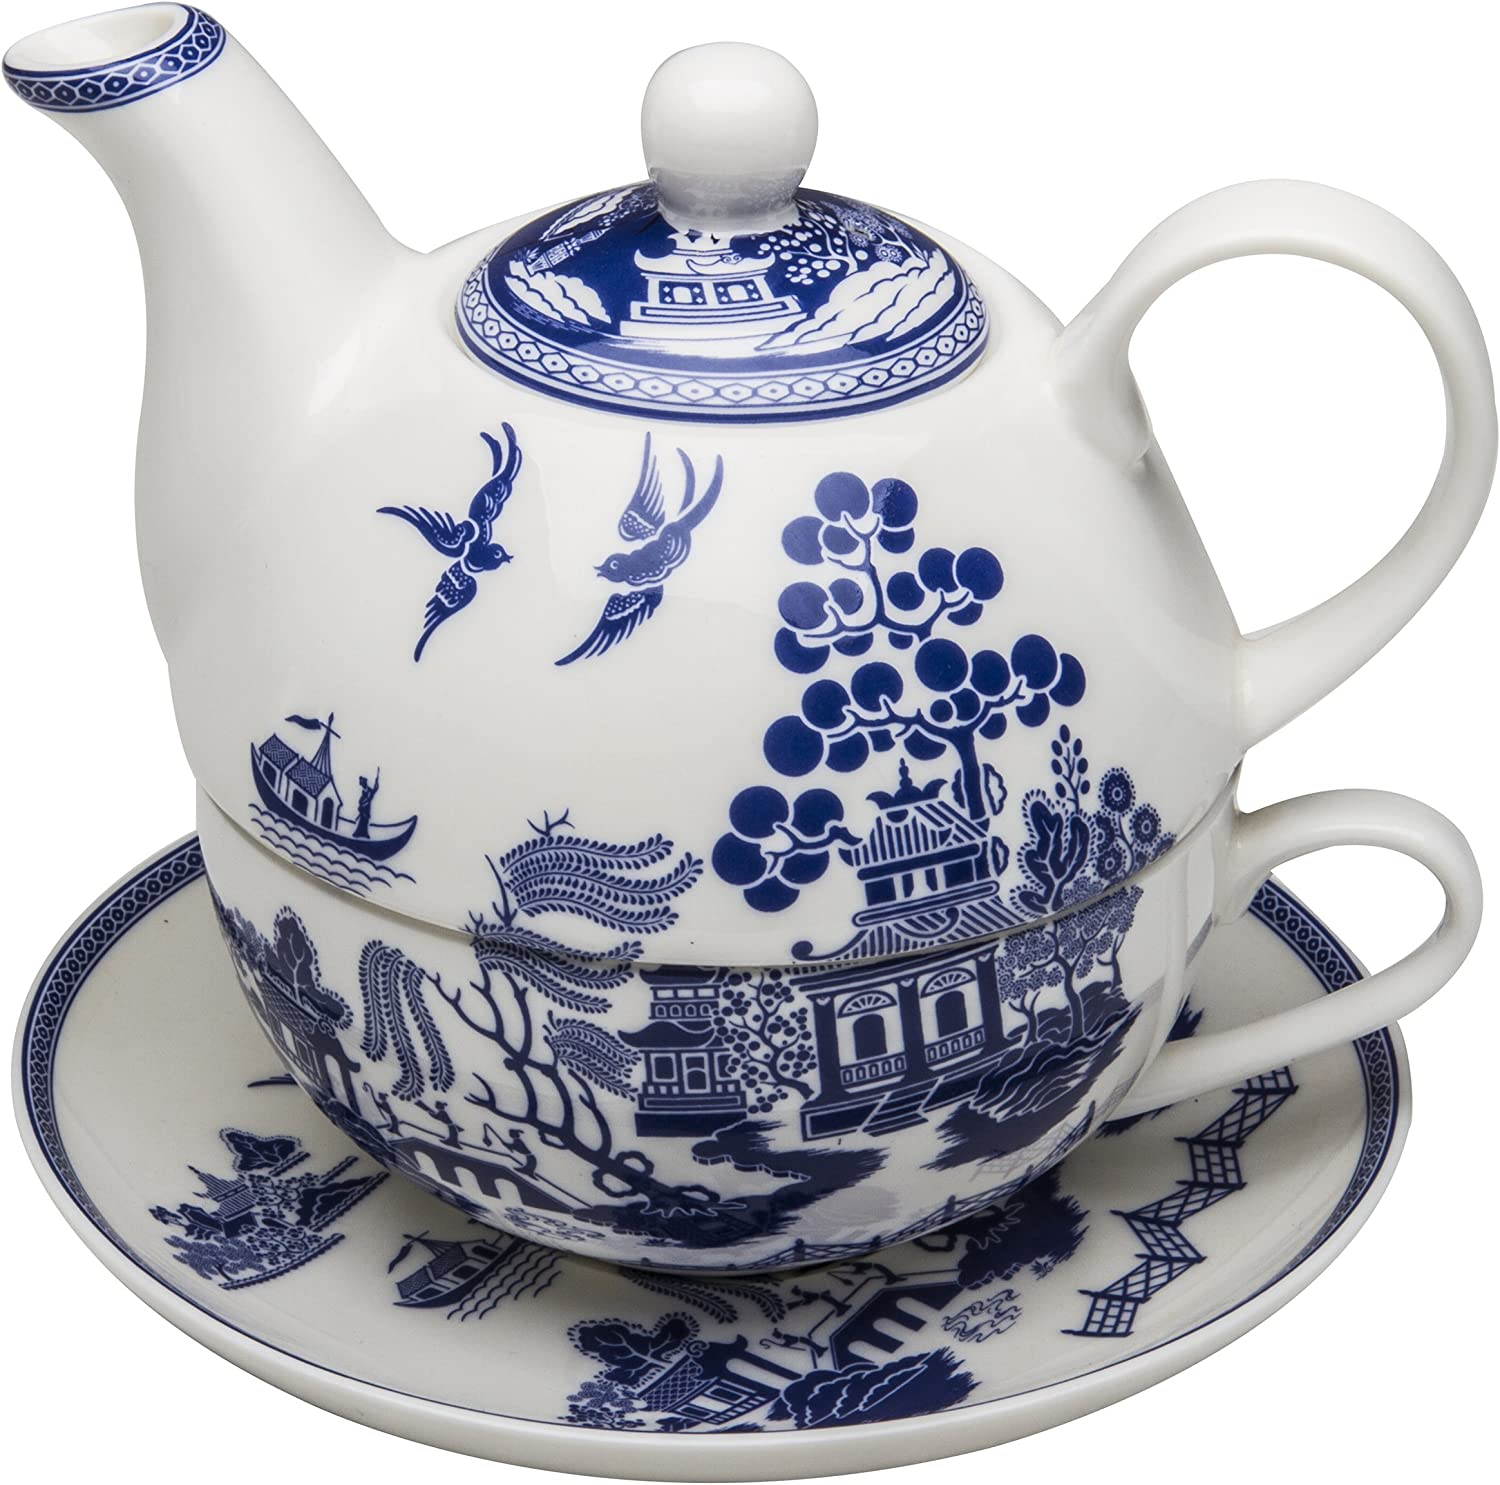 Grace Teaware Porcelain Direct store 4-Piece Tea Blue Willow One For Chicago Mall